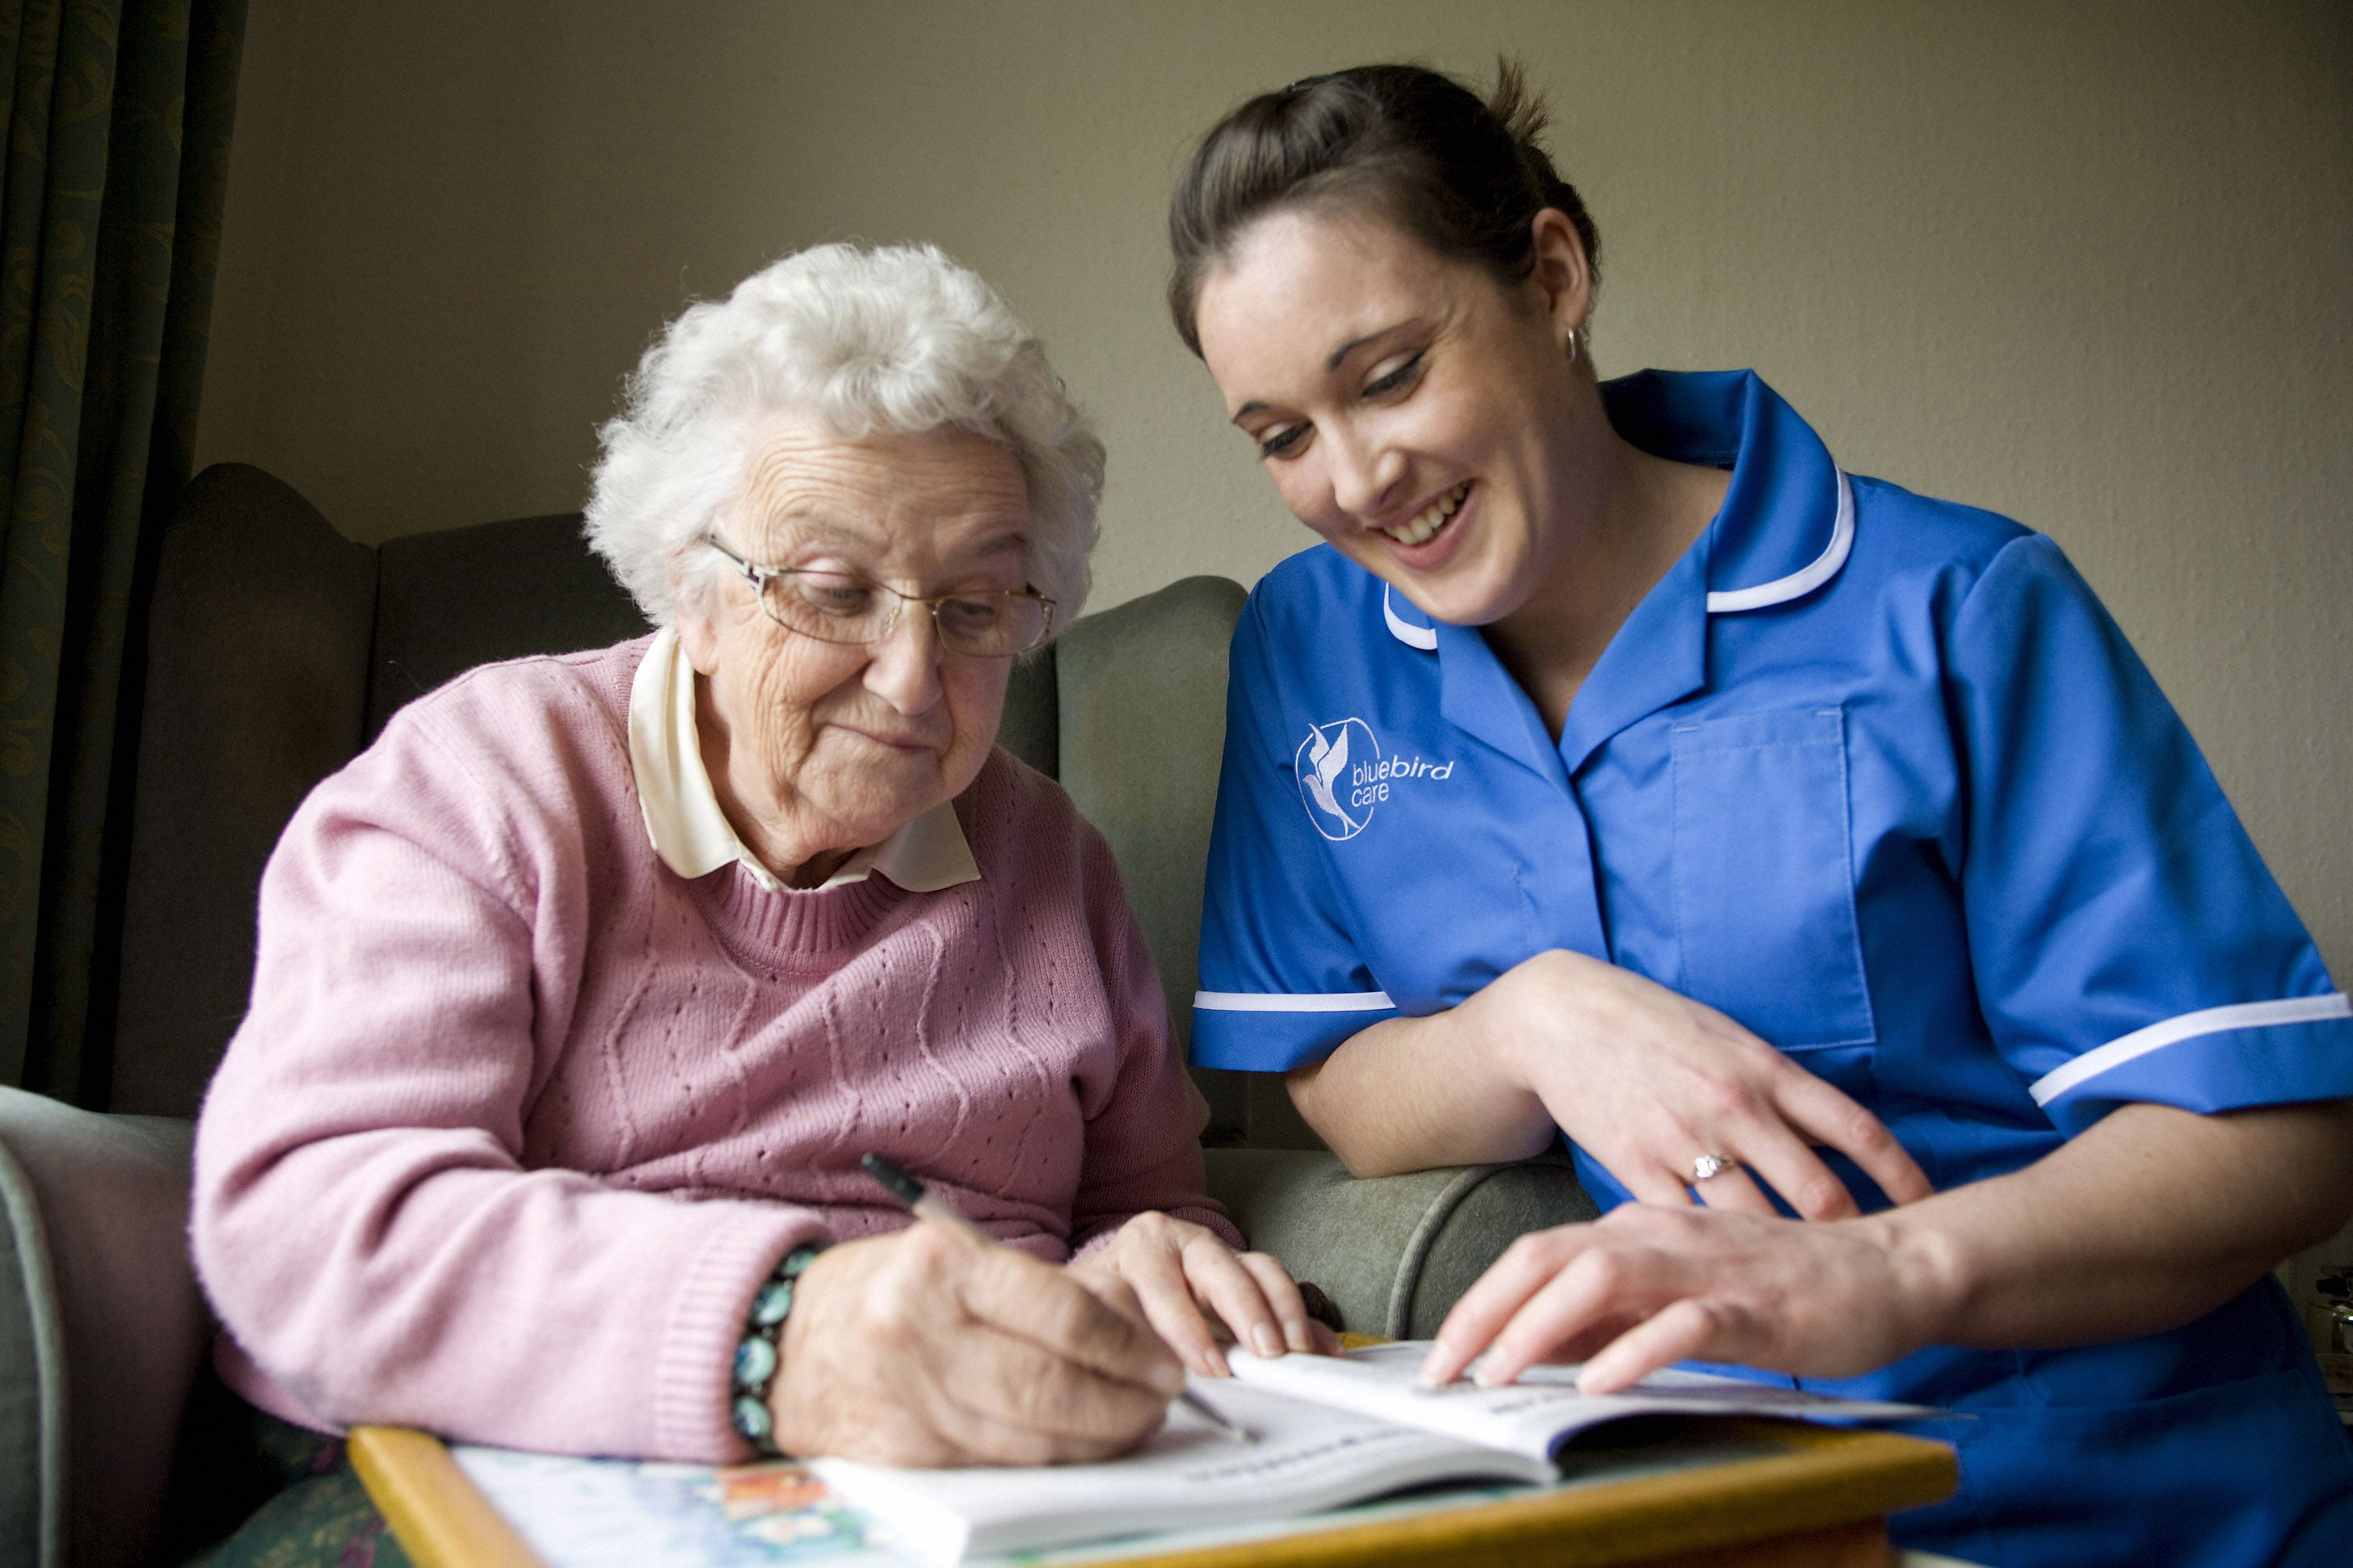 We provide homecare for adults of all ages and abilities